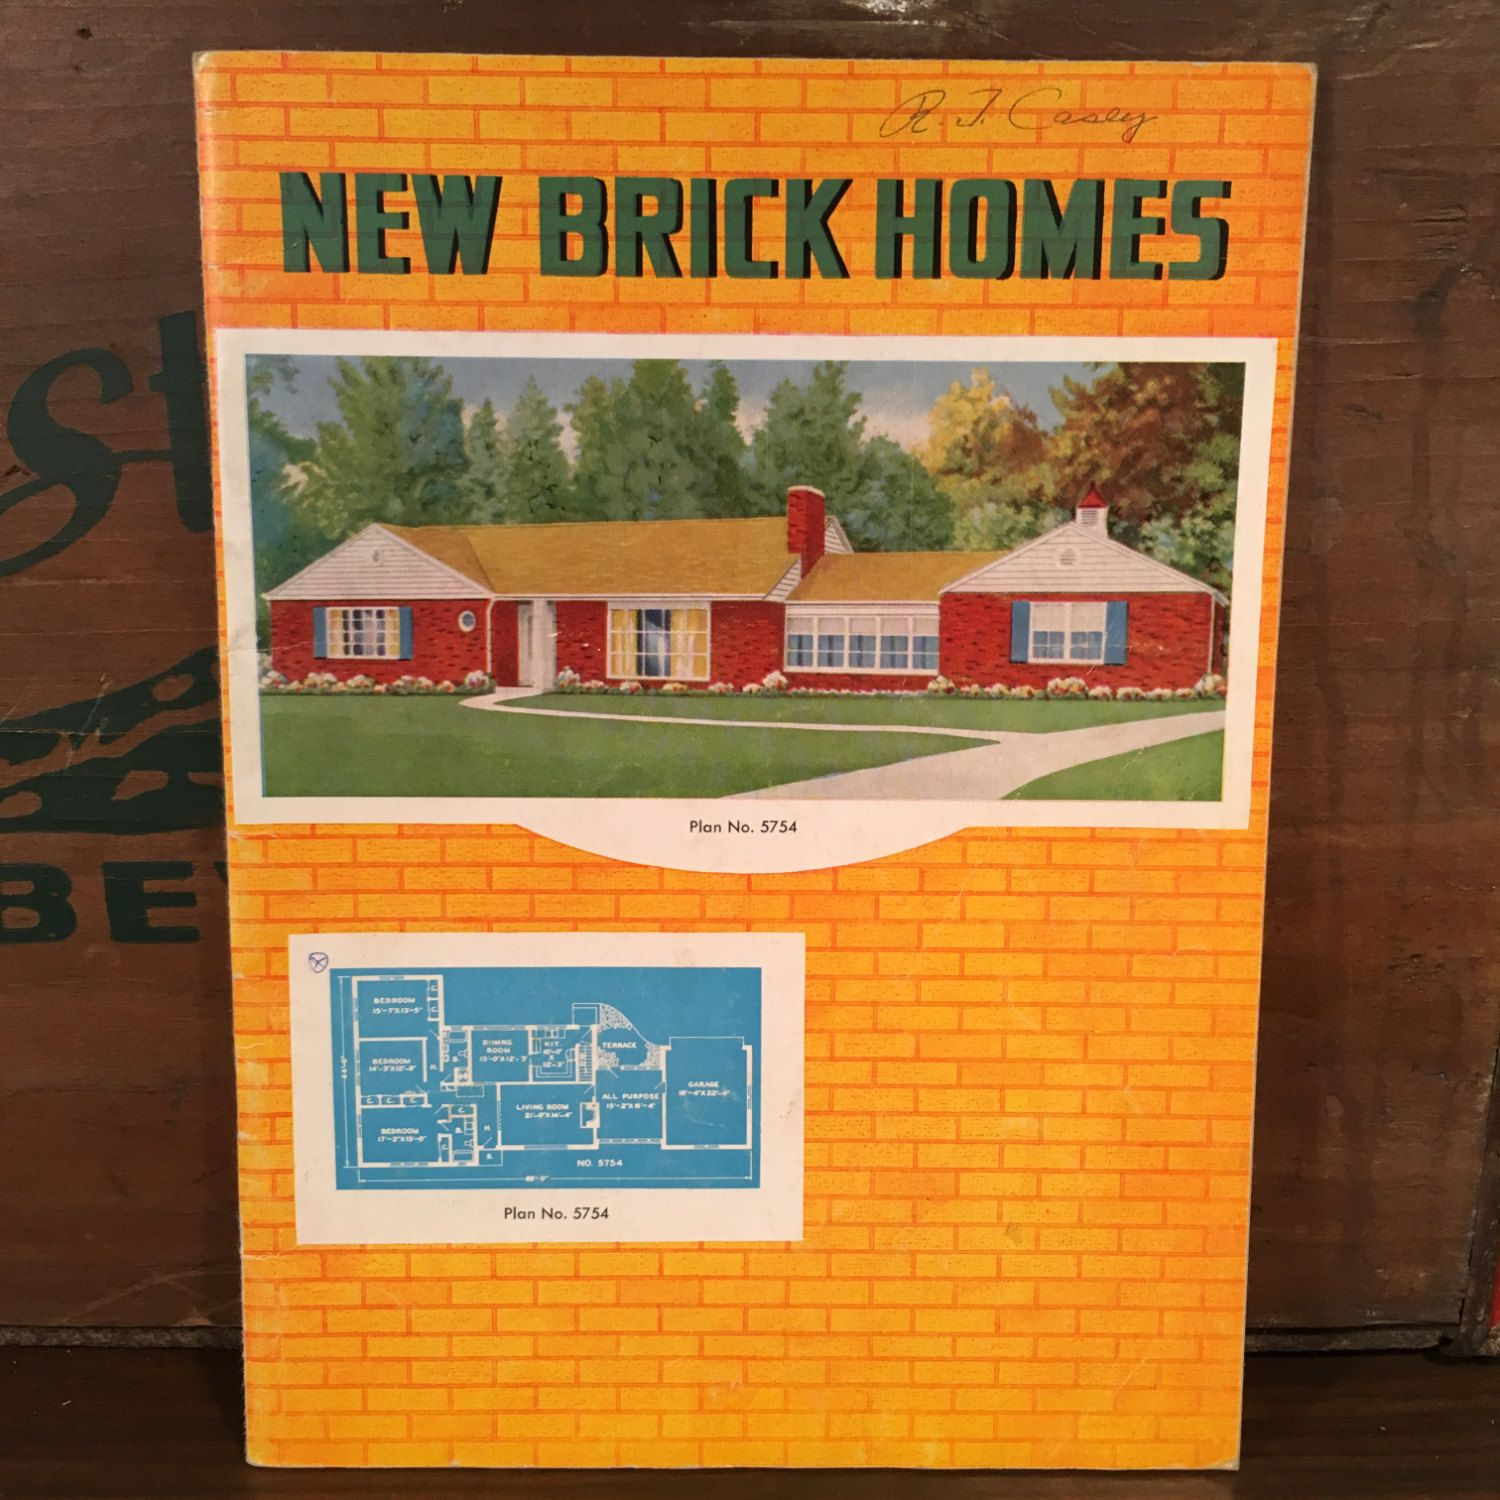 New brick homes 1950s garlinghouse building plan service vintage mid new brick homes 1950s garlinghouse building plan service vintage mid century house blueprint catalog topeka kansas malvernweather Choice Image